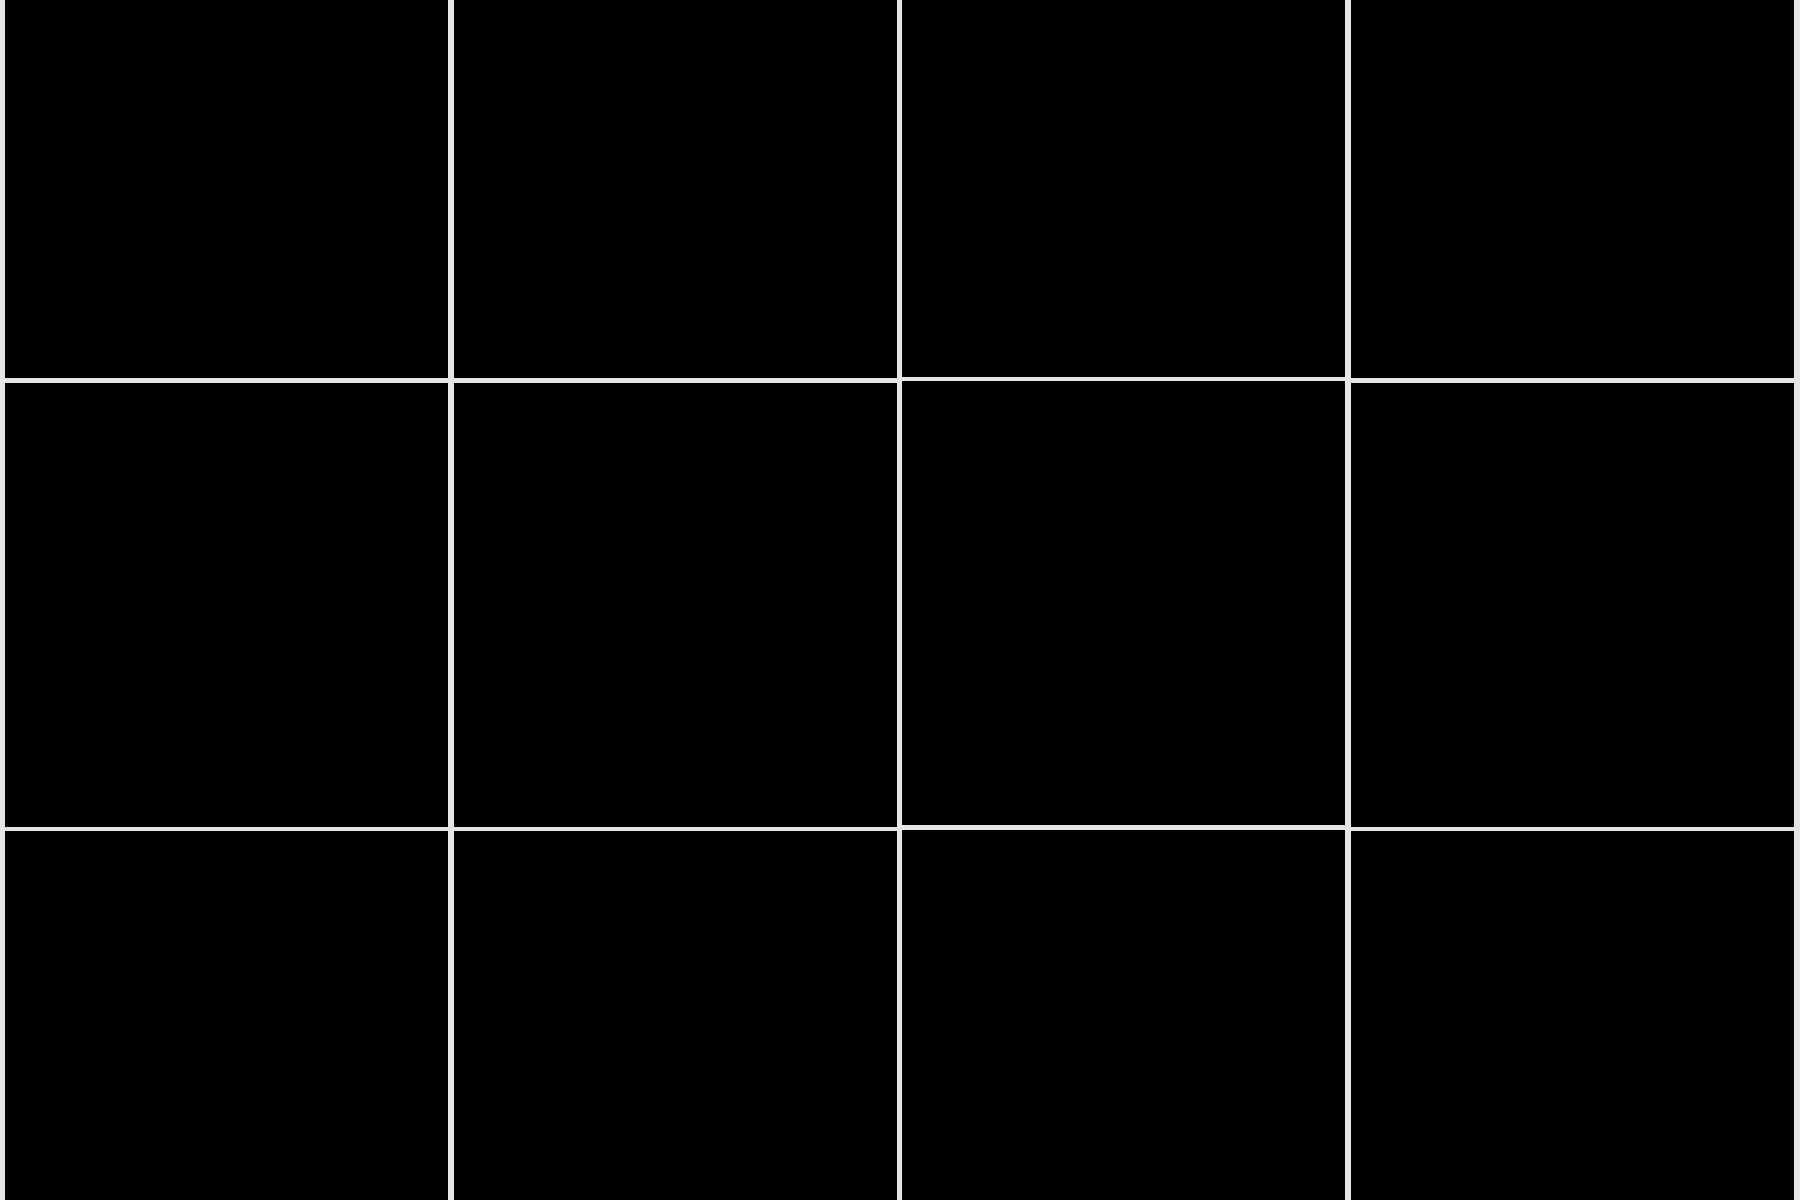 Grid of black squares resembling an Instagram feed.